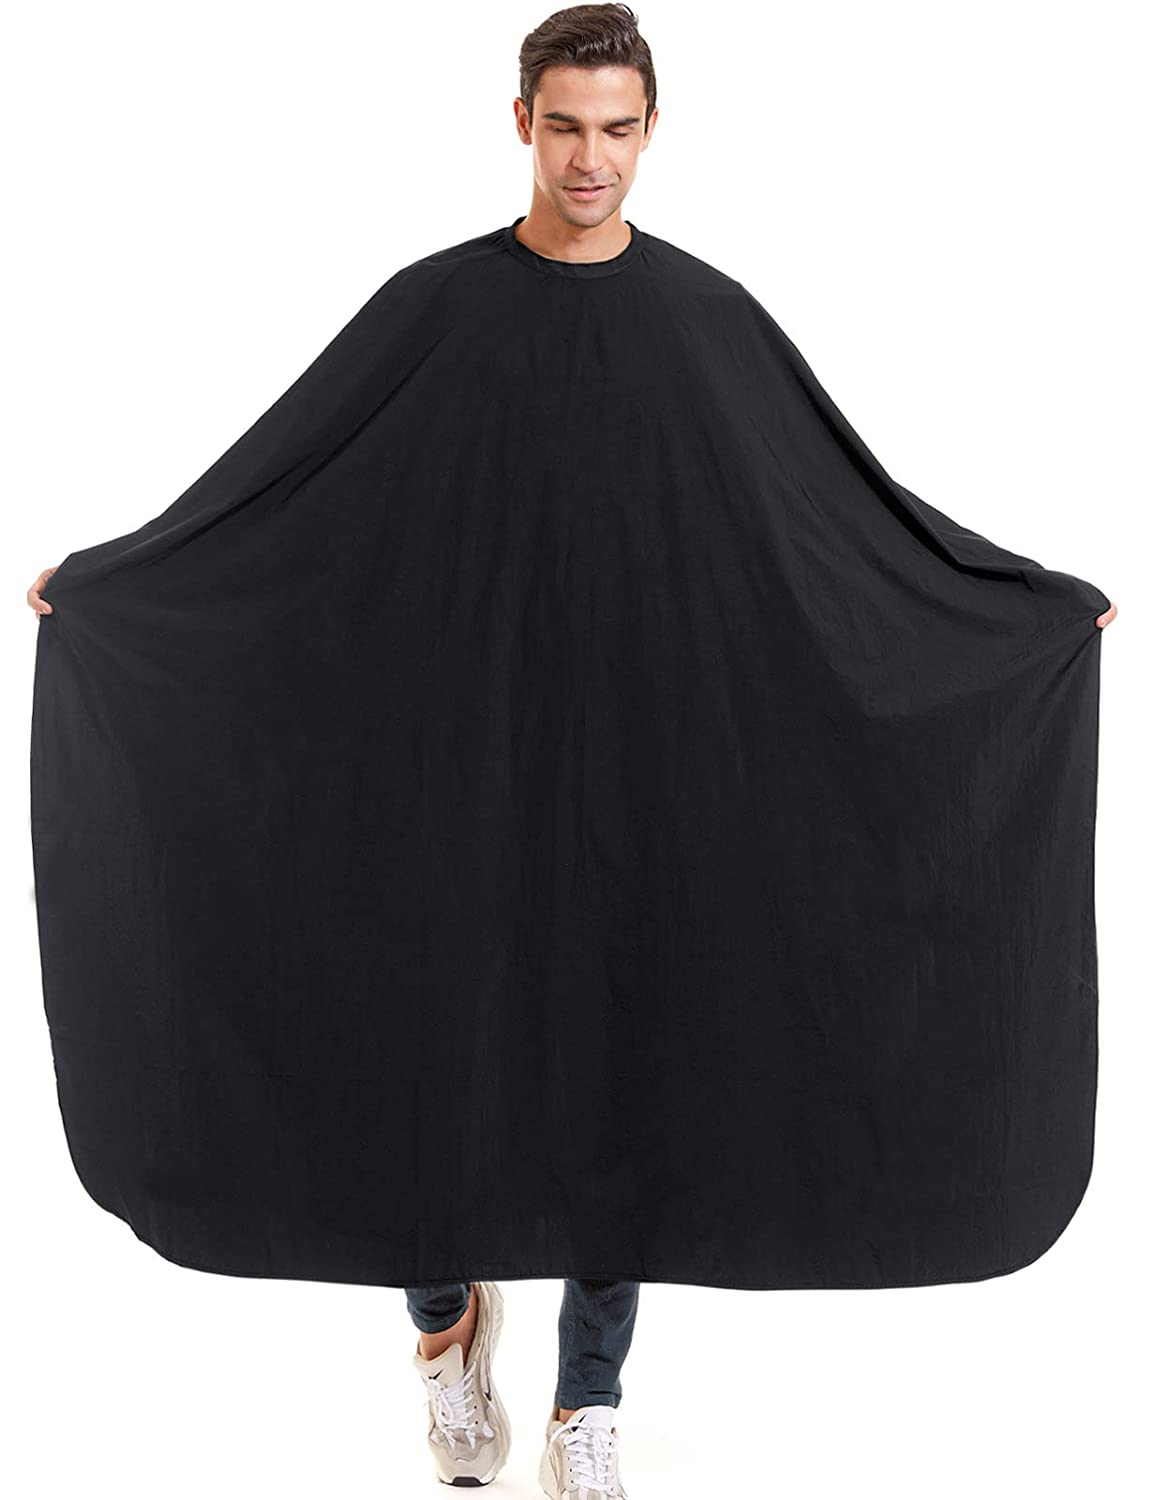 """izzycka Nylon Barber Cape 64""""x56"""" Waterproof Salon Large Hair Cutting Cape Haircut Cape for men With Adjustable Snap Closure Color Capes Professional Stylist Hairdresser apron adults Unisex Black : Beauty & Personal Care"""